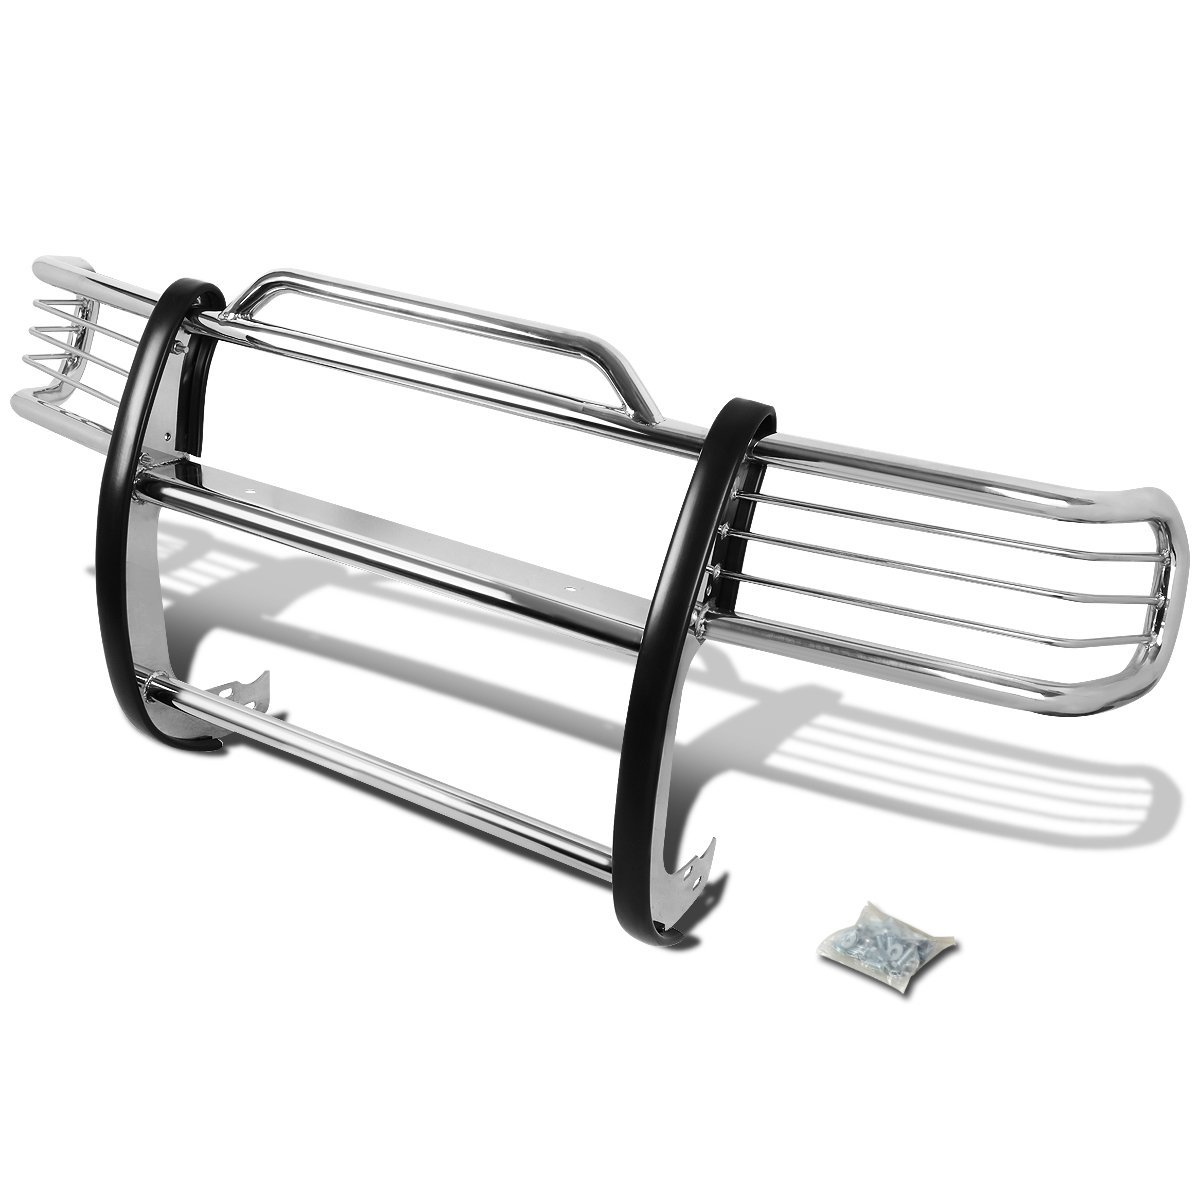 Cheap Isuzu Sport Car Find Deals On Line At Alibabacom 1999 Amigo Water Pump Get Quotations Honda Passport Redeo Front Bumper Protector Brush Grille Guard Chrome